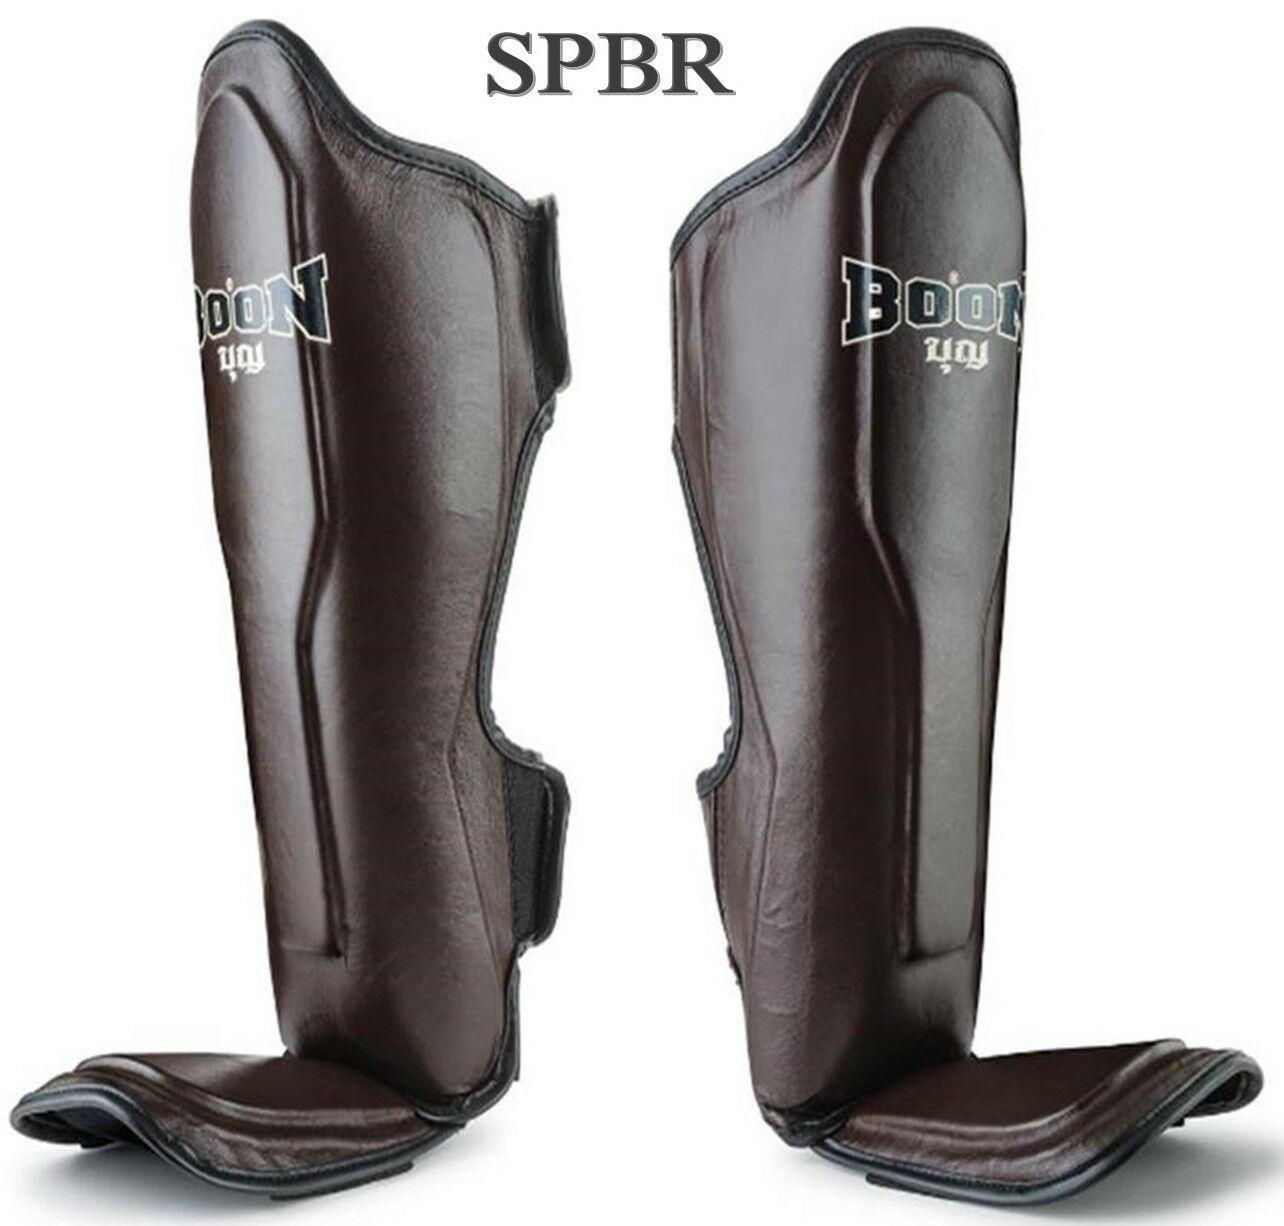 BOON SHIN GUARDS PAD SPBR  BROWN  M L XL MUAY THAI MMA TRAINING SPARRING